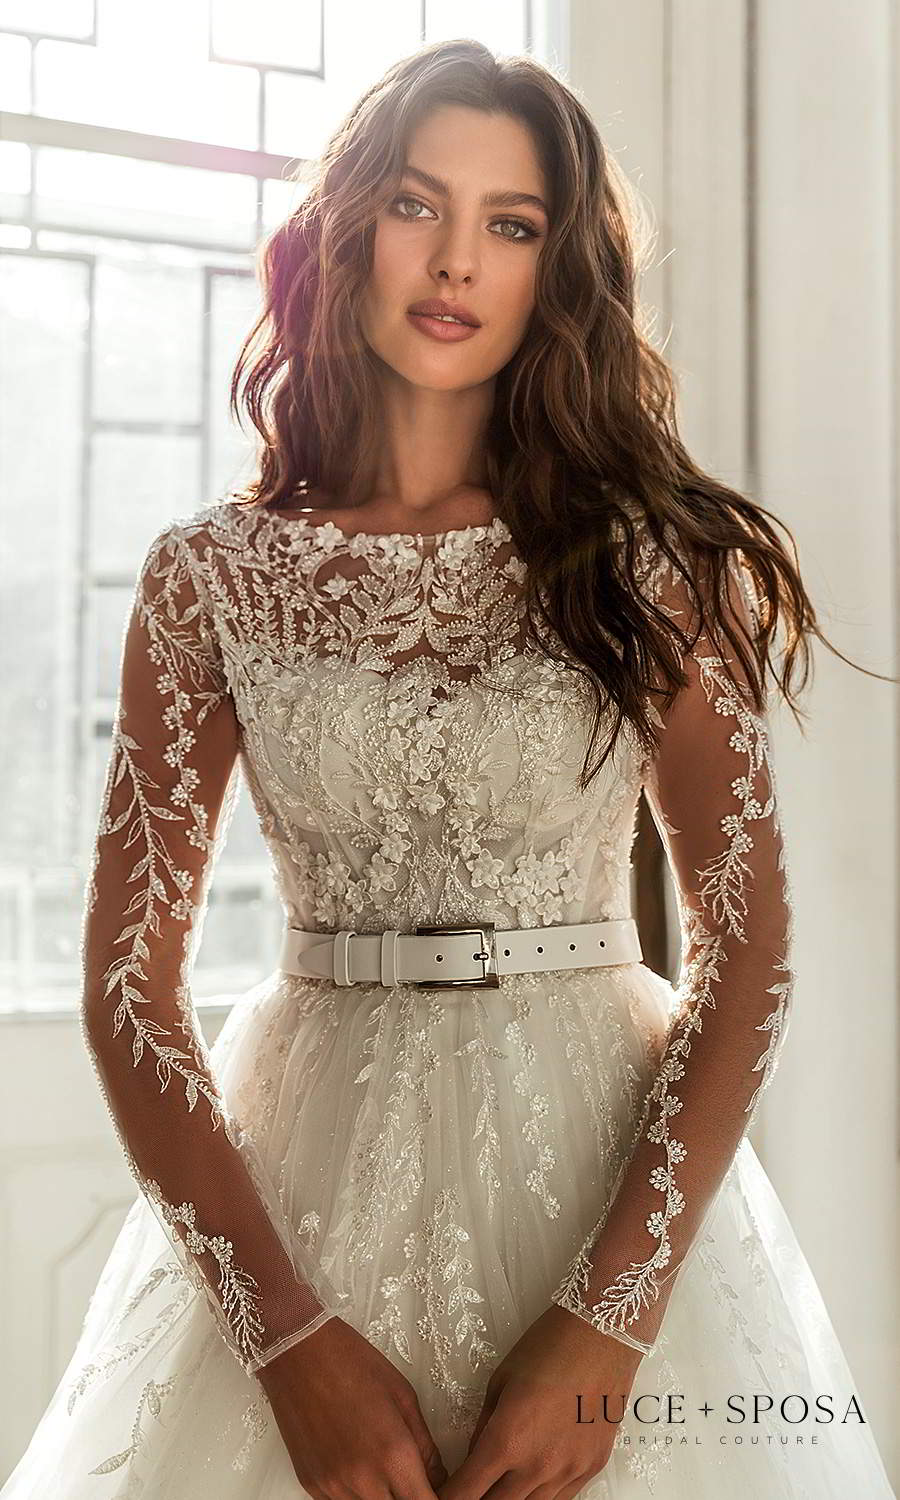 luce sposa 2021 shades of couture bridal long sleeves bateay neckline heavily embellished bodice a line ball gown wedding dress (valentina) zv